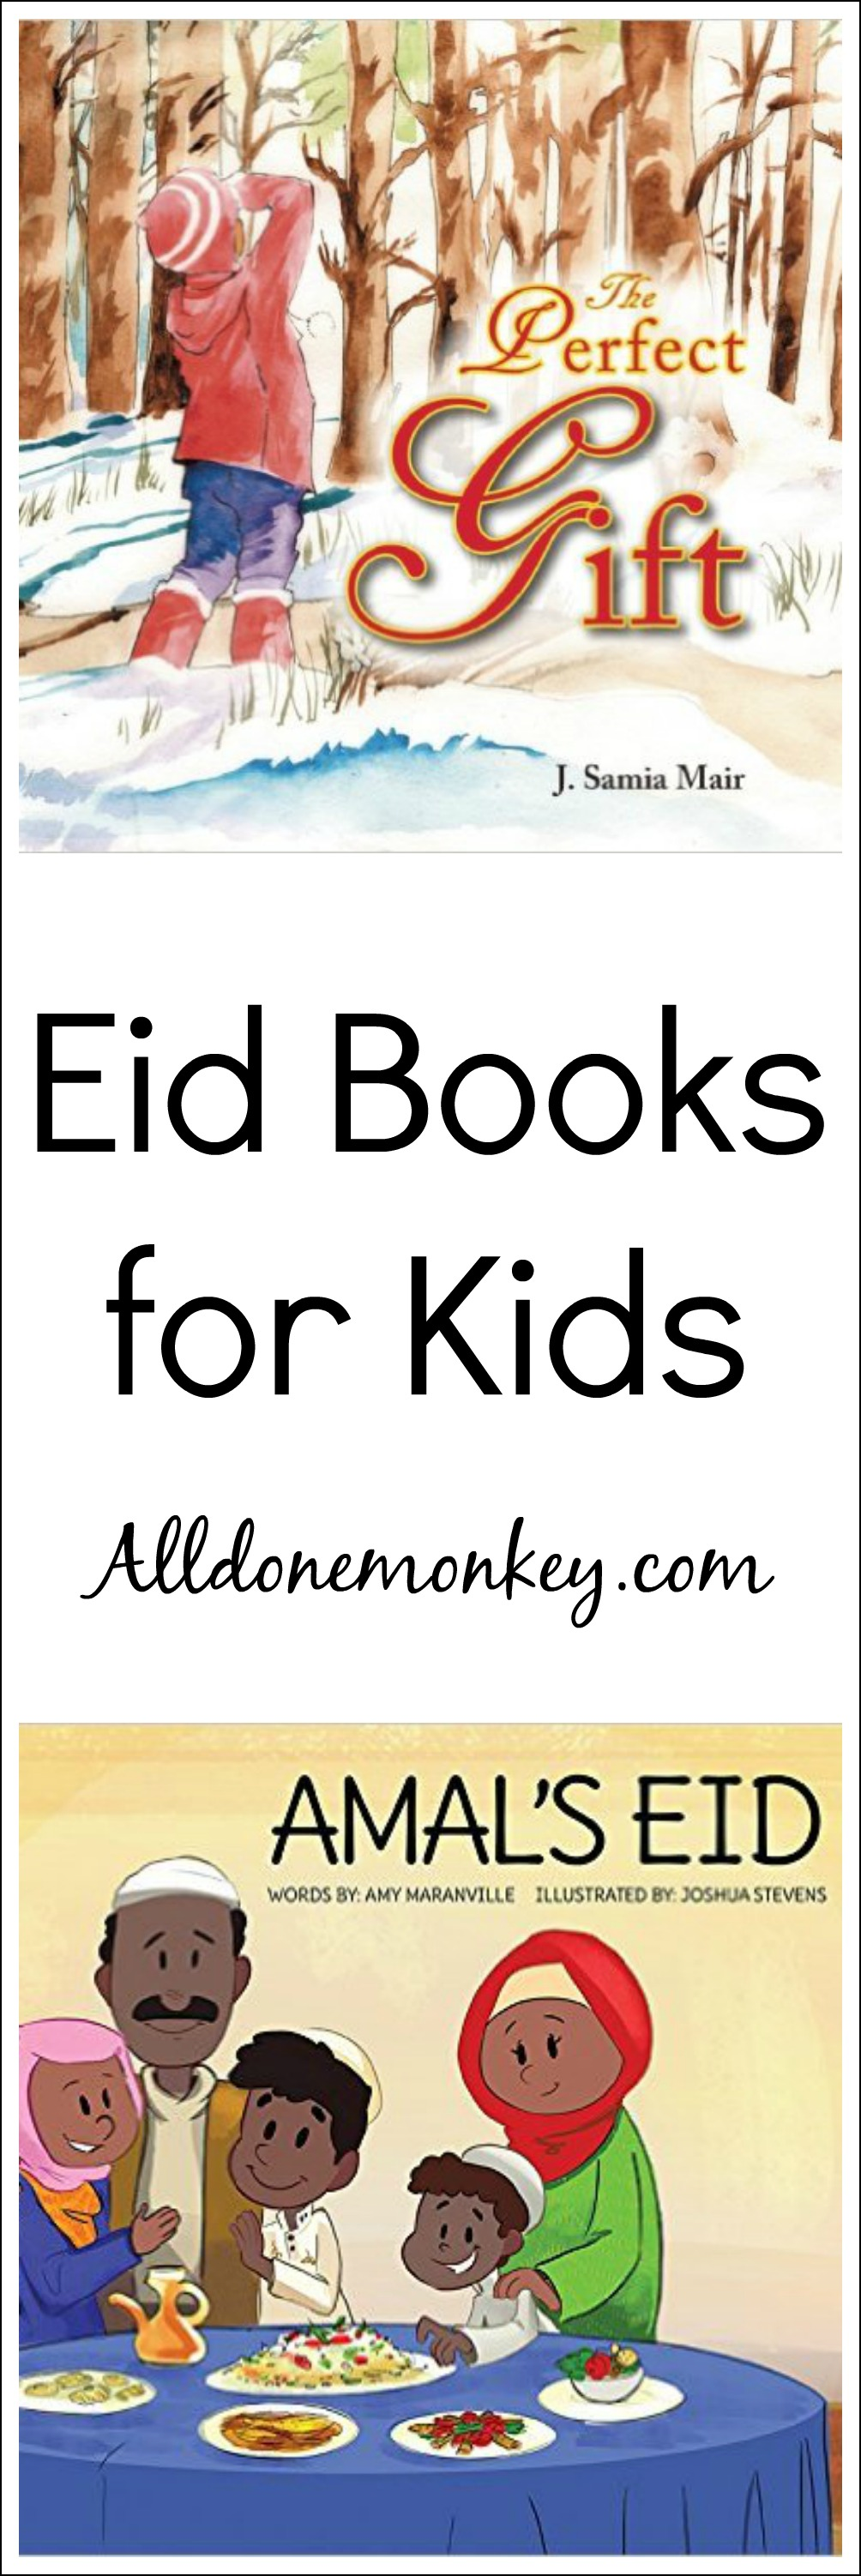 Eid Books for Kids | Alldonemonkey.com